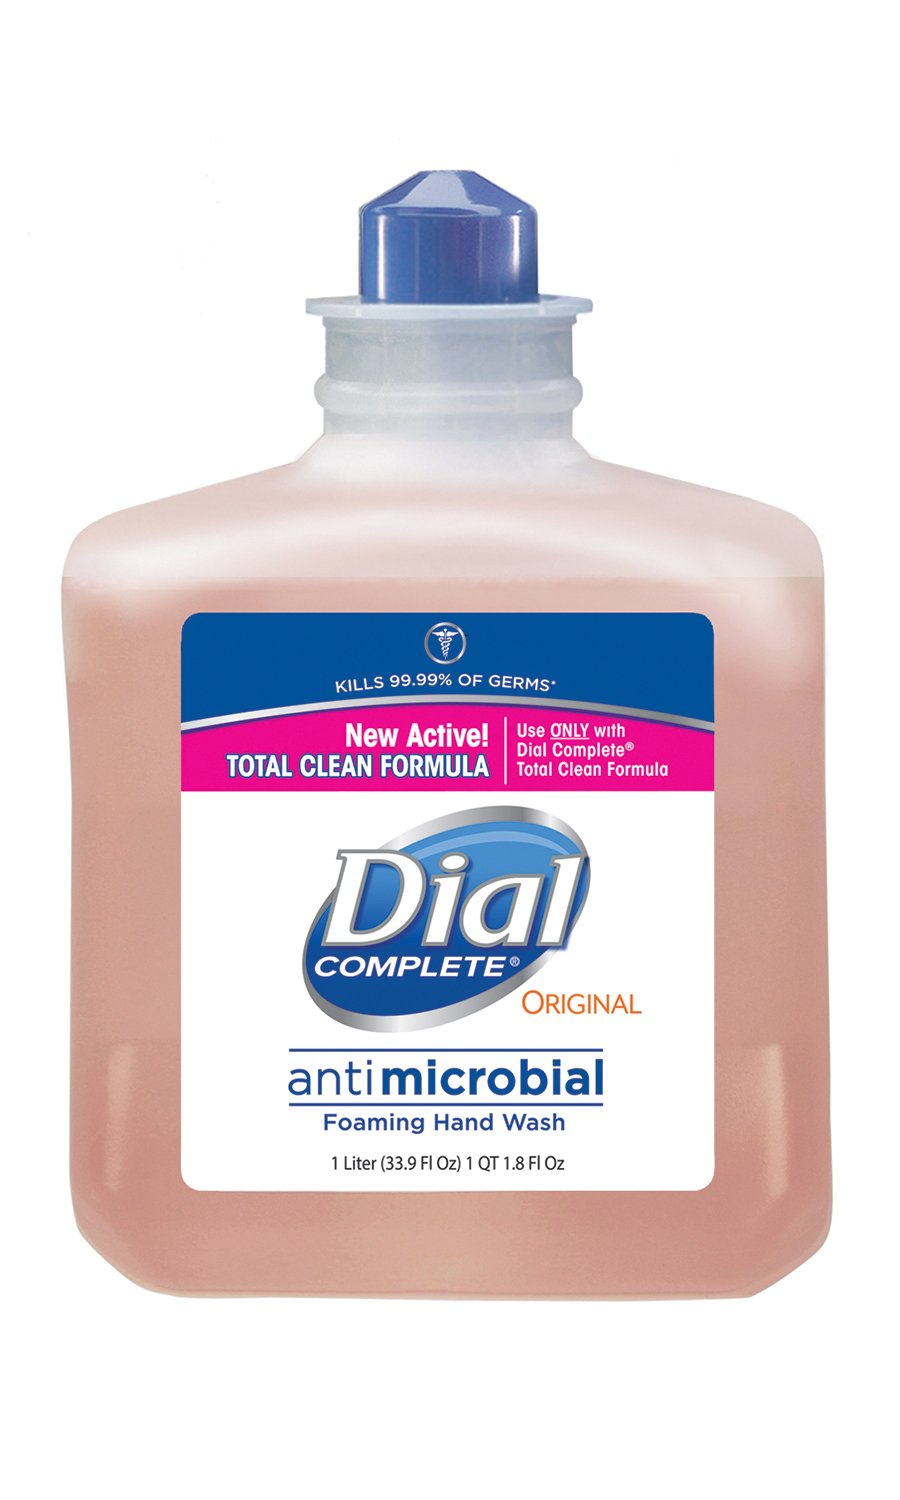 Dial Complete 1206709 Antimicrobial Foaming Hand Soap, 1 Liter Manual Refill (Pack of 6) by Dial